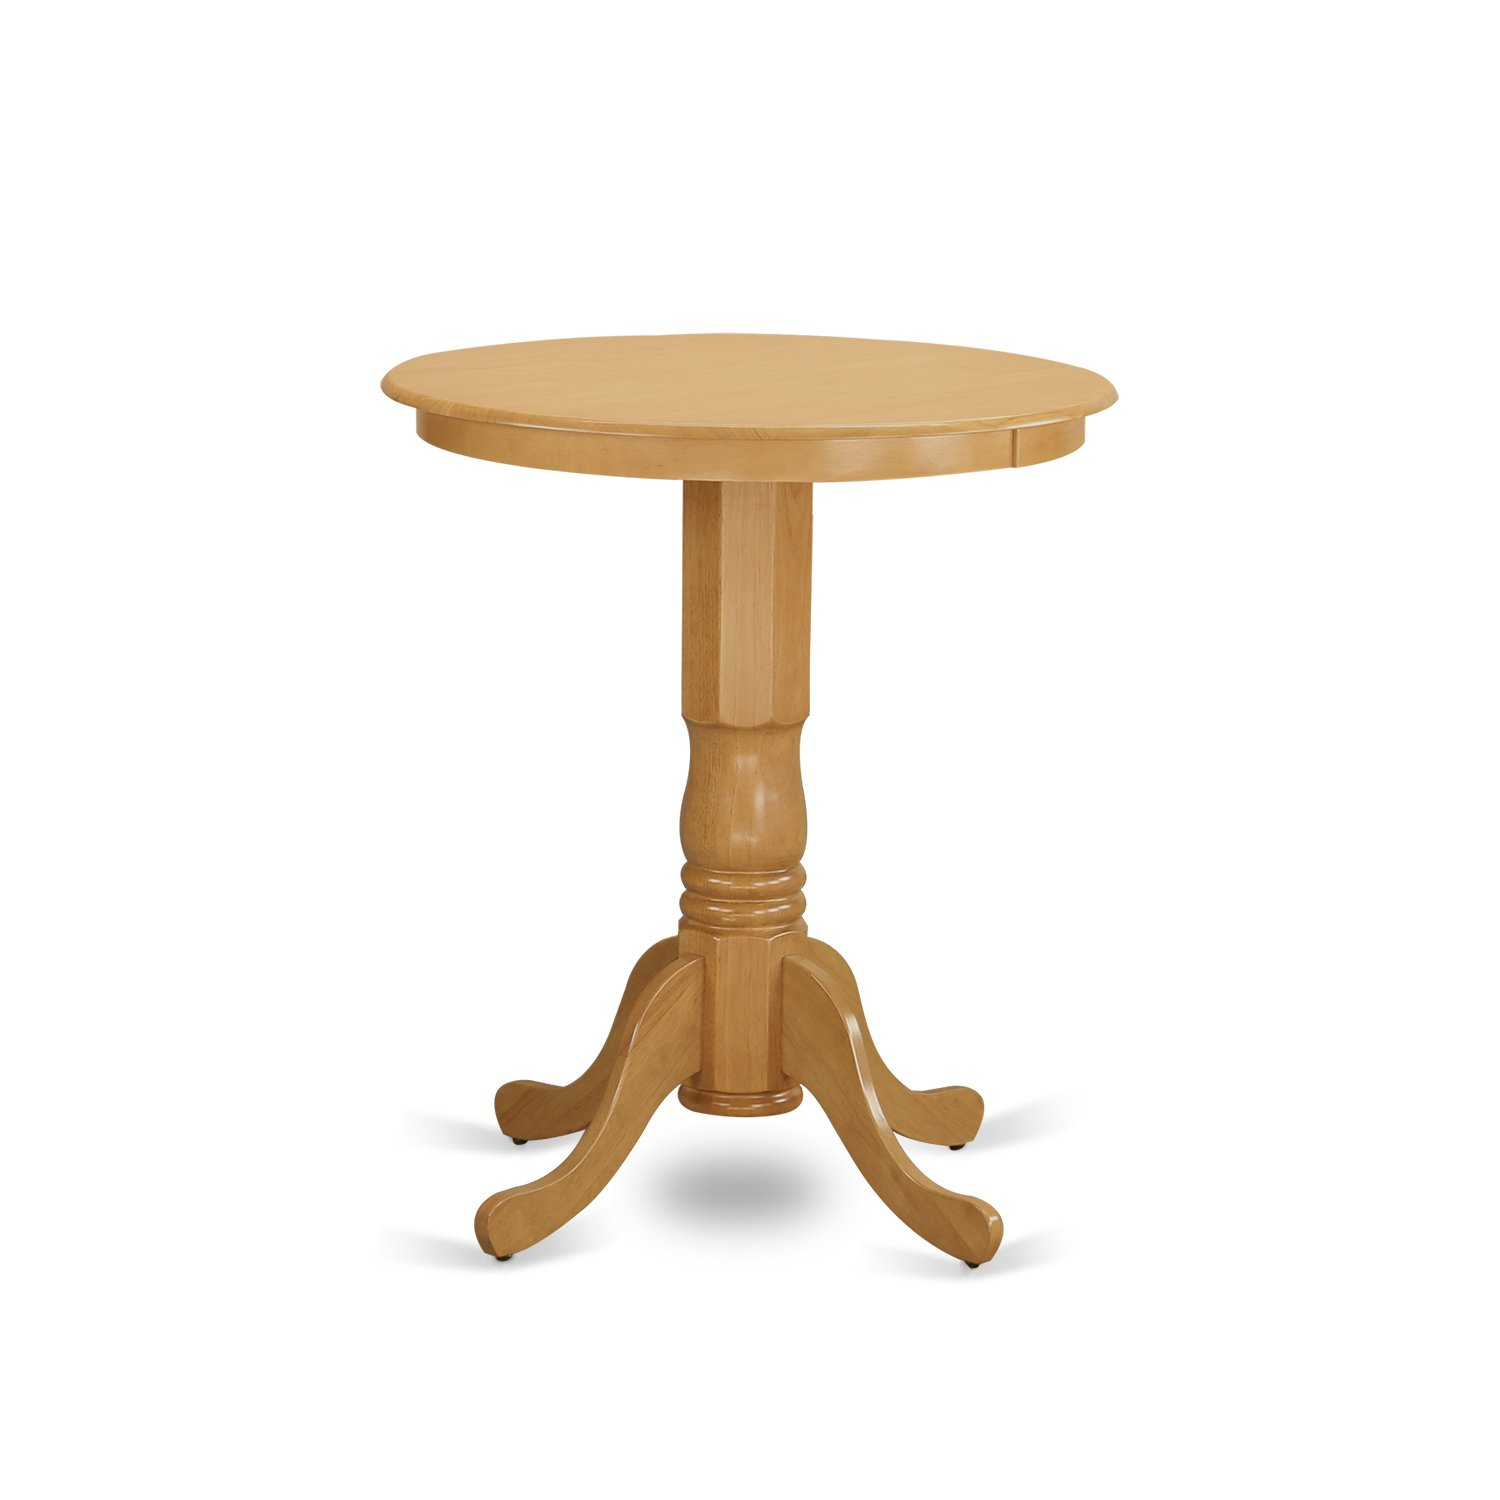 East West Furniture EDT-OAK-TP Eden Round Counter Height Table, Oak Finish